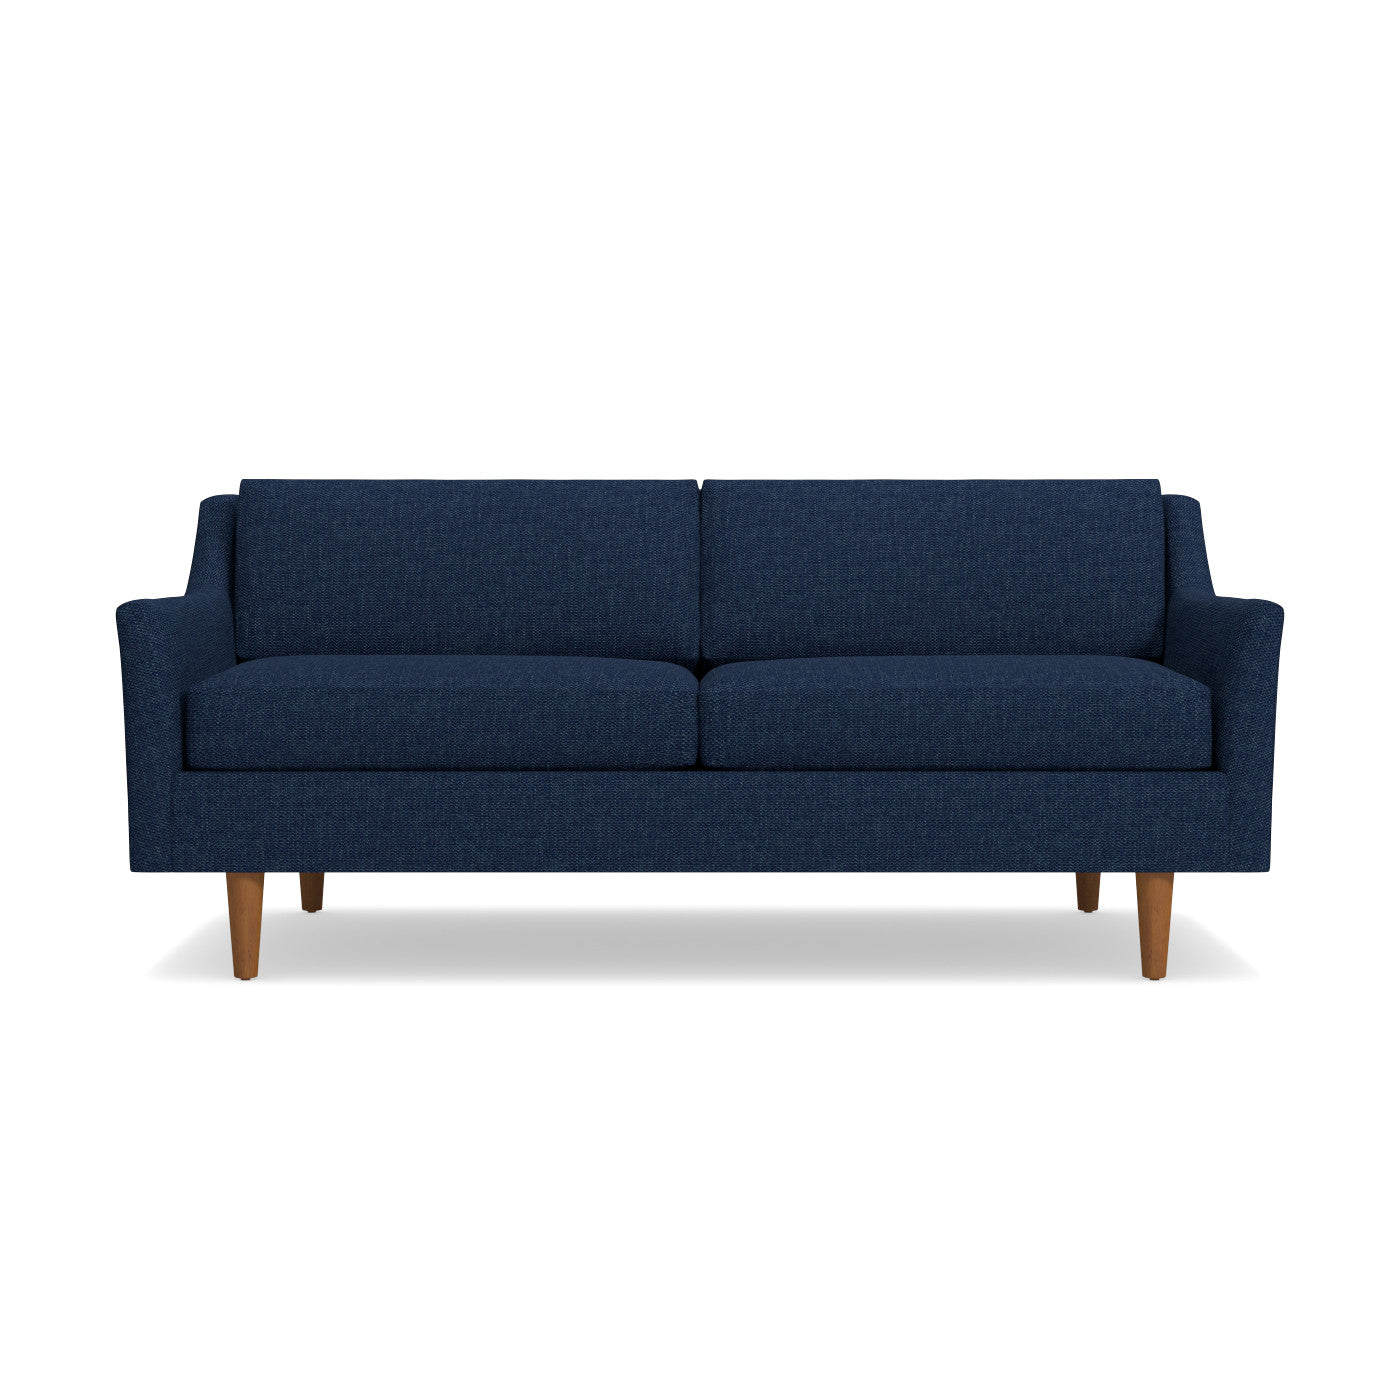 Sutton Sofa from Kyle Schuneman CHOICE OF FABRICS